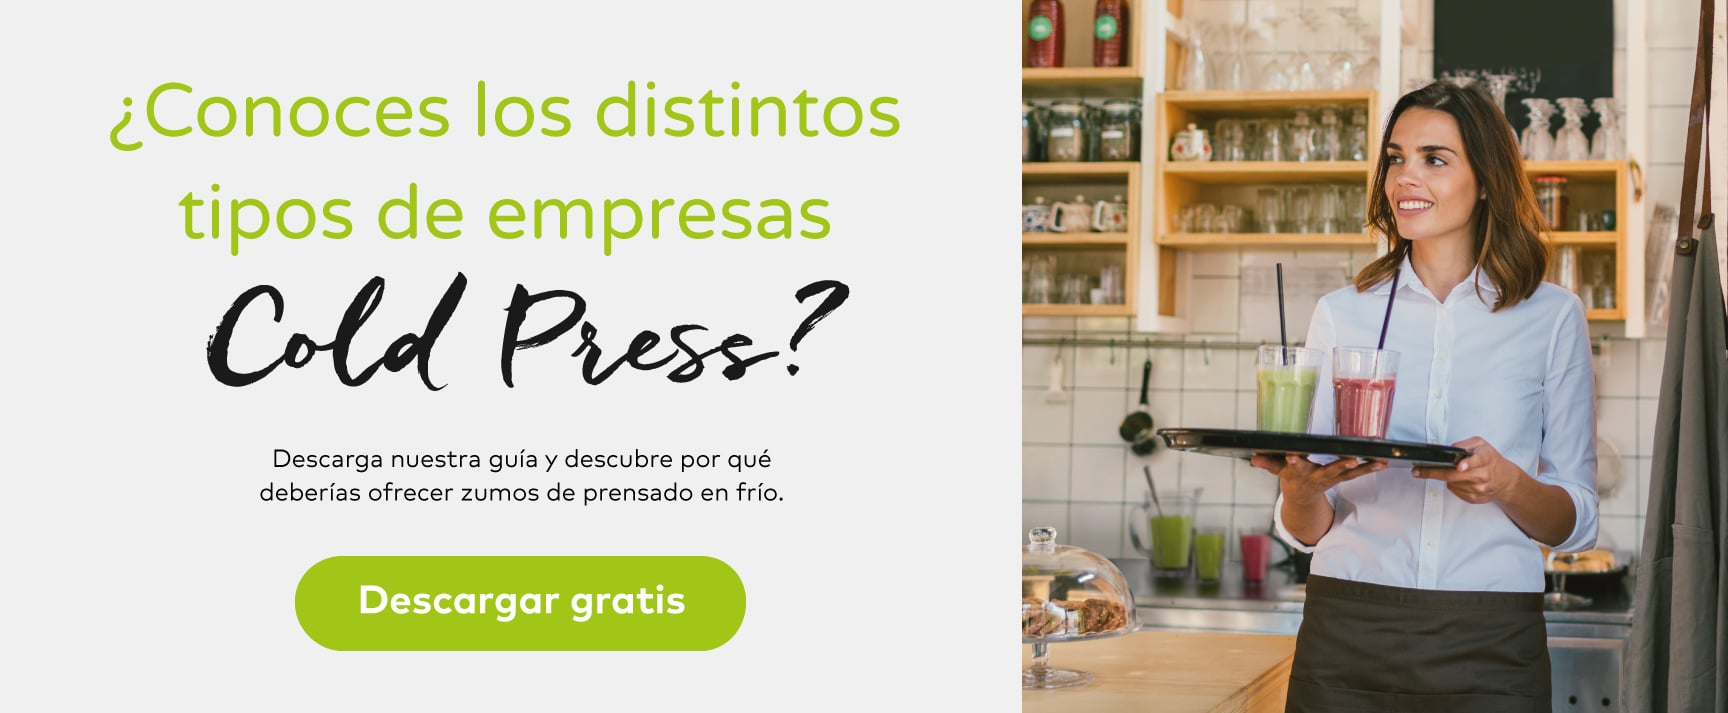 eBook negocio Cold Press